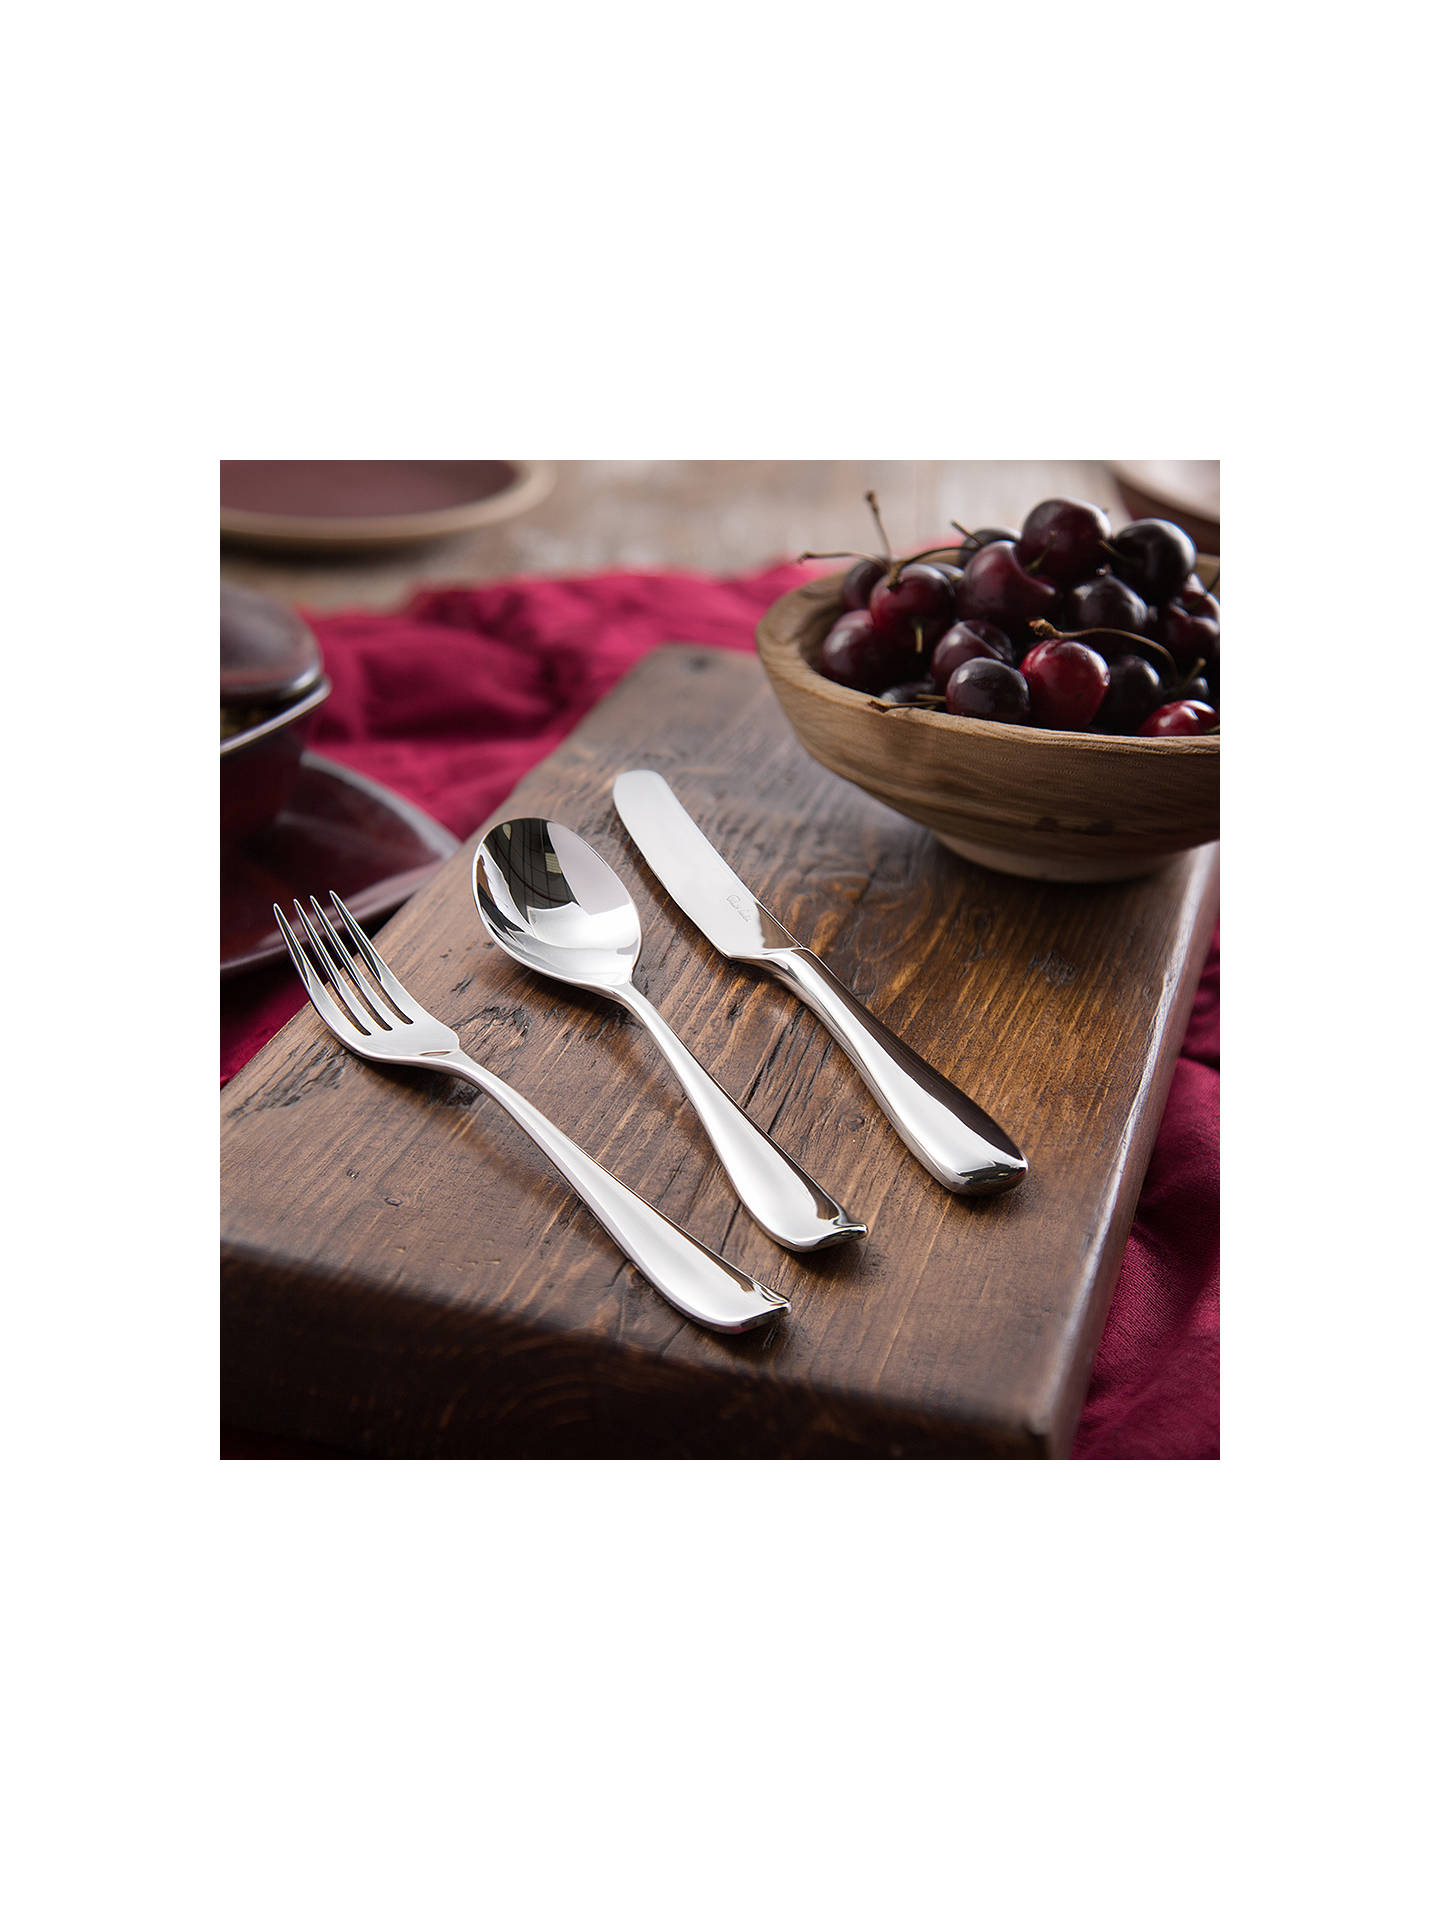 BuyRobert Welch Warwick Table Knife Online at johnlewis.com